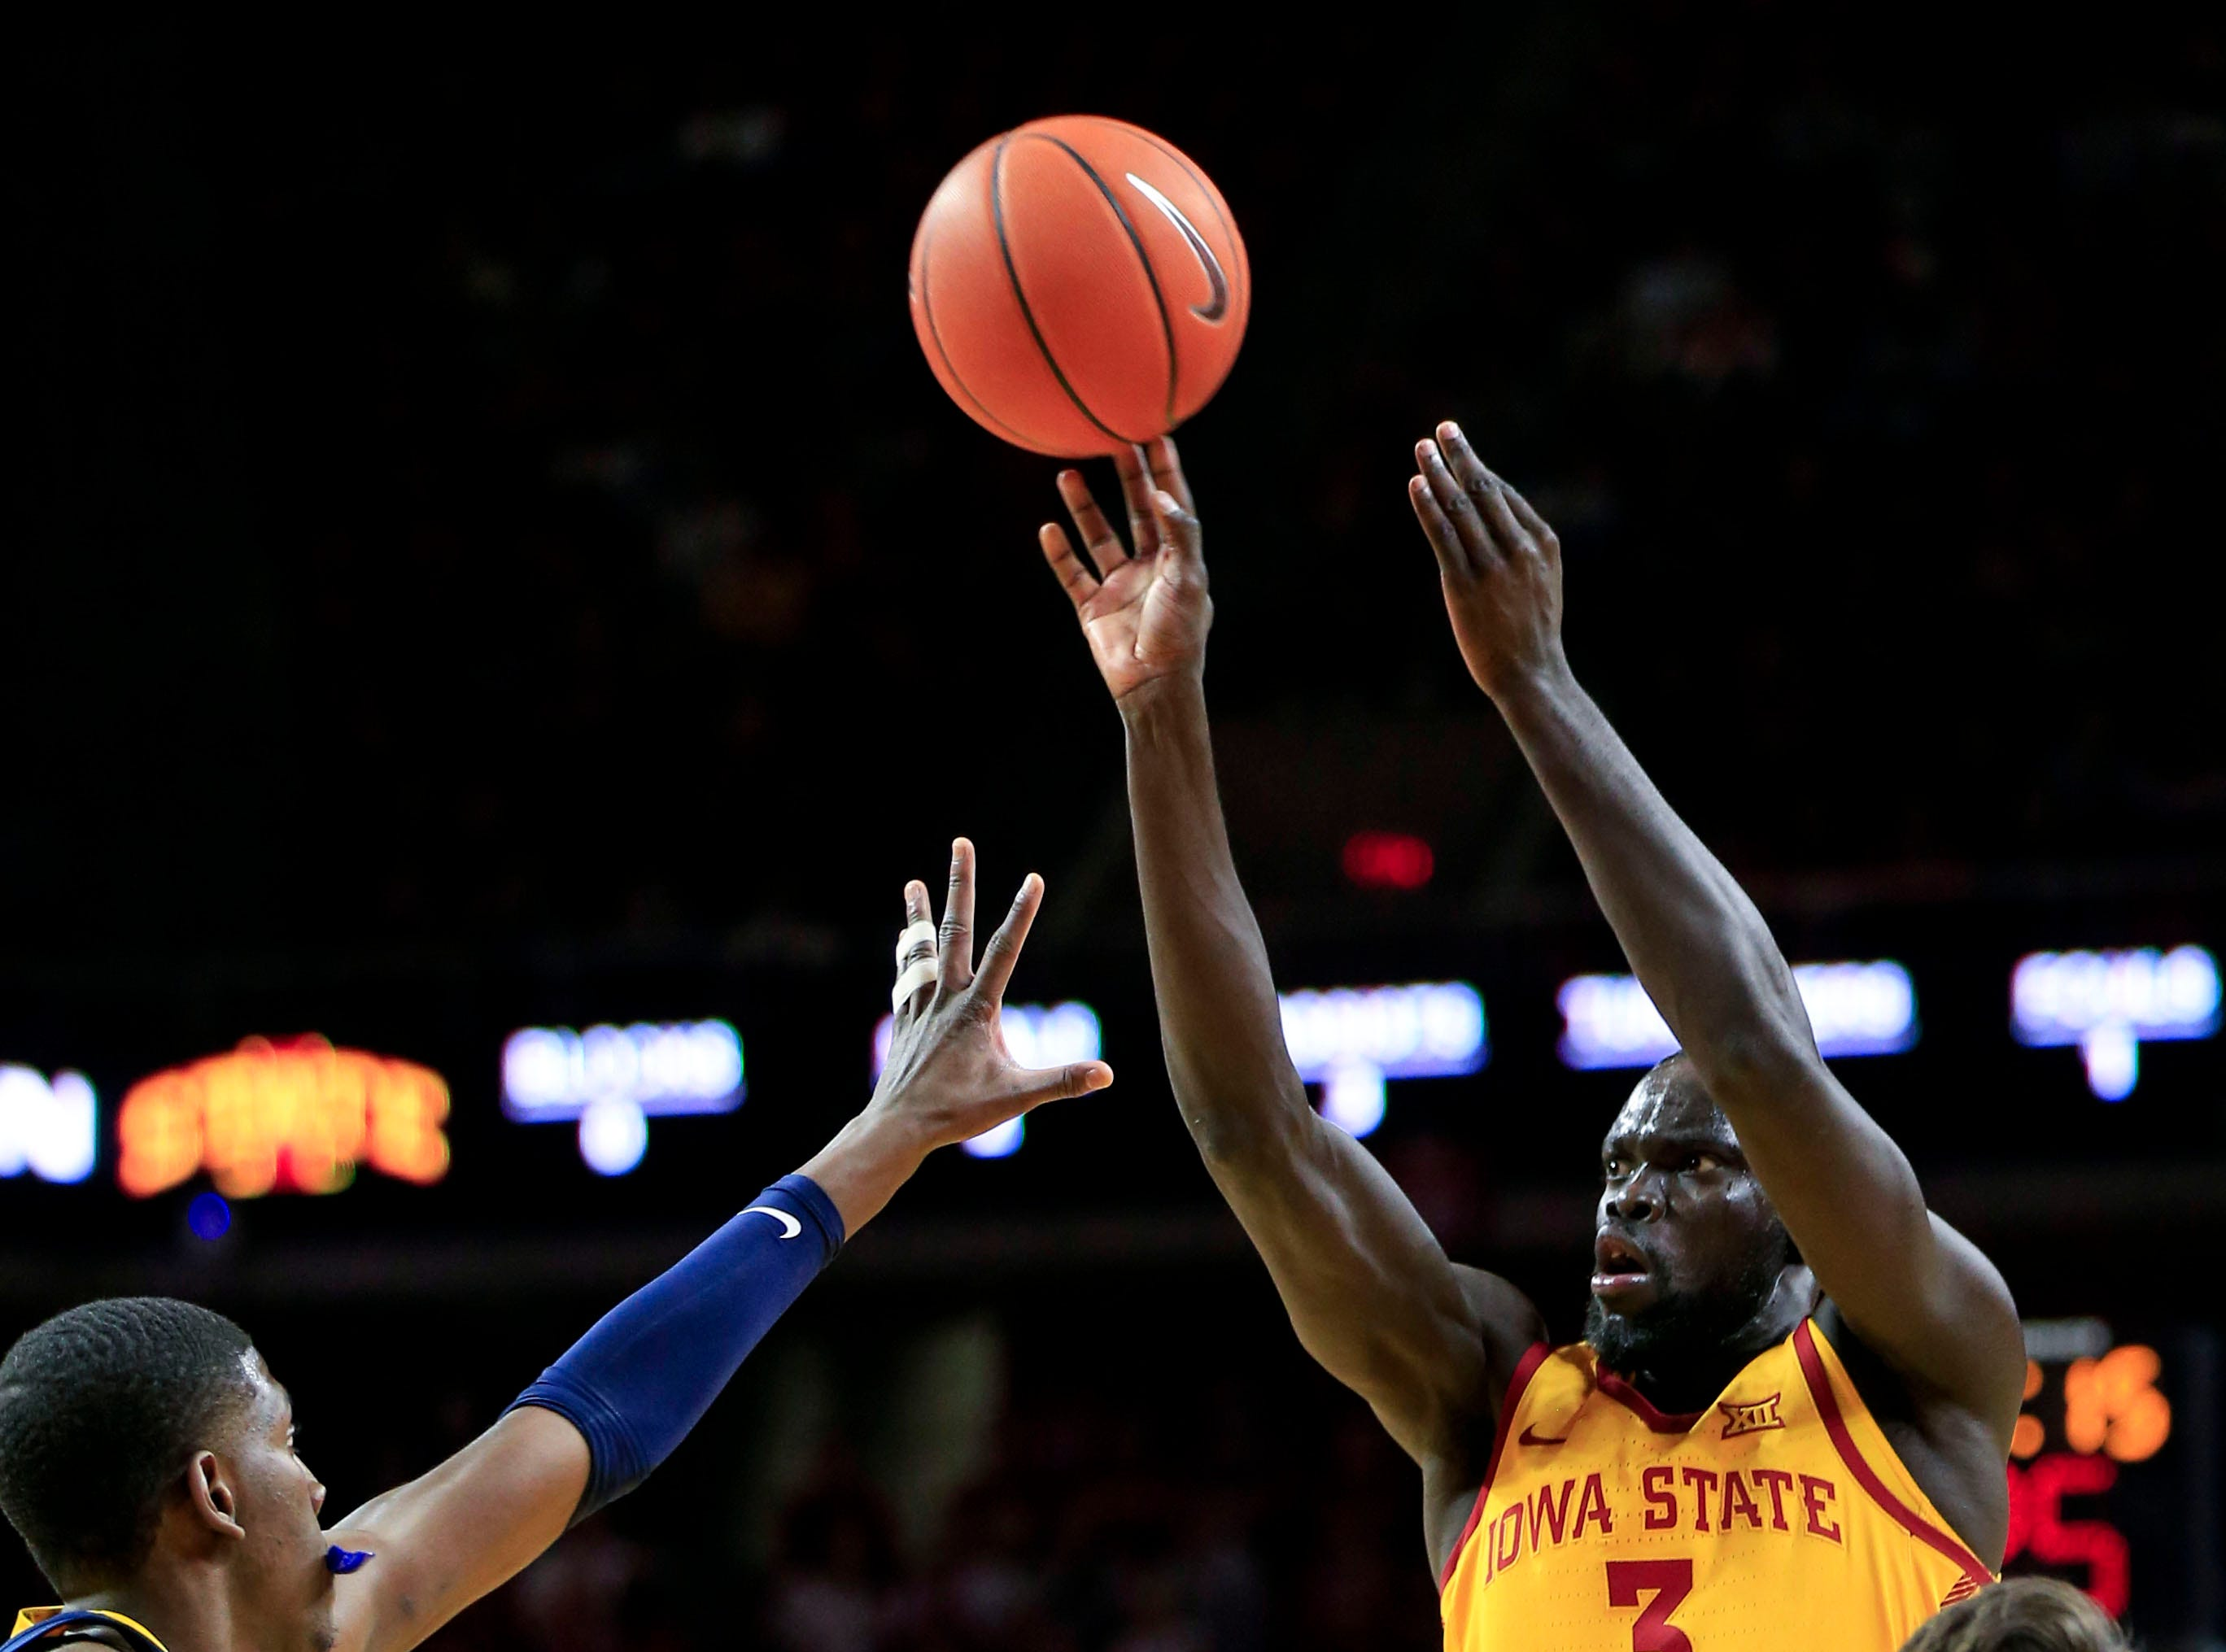 Iowa State's Marial Shayok puts up a shot during a game against West Virginia at Hilton Coliseum Wednesday, Jan. 30, 2019.